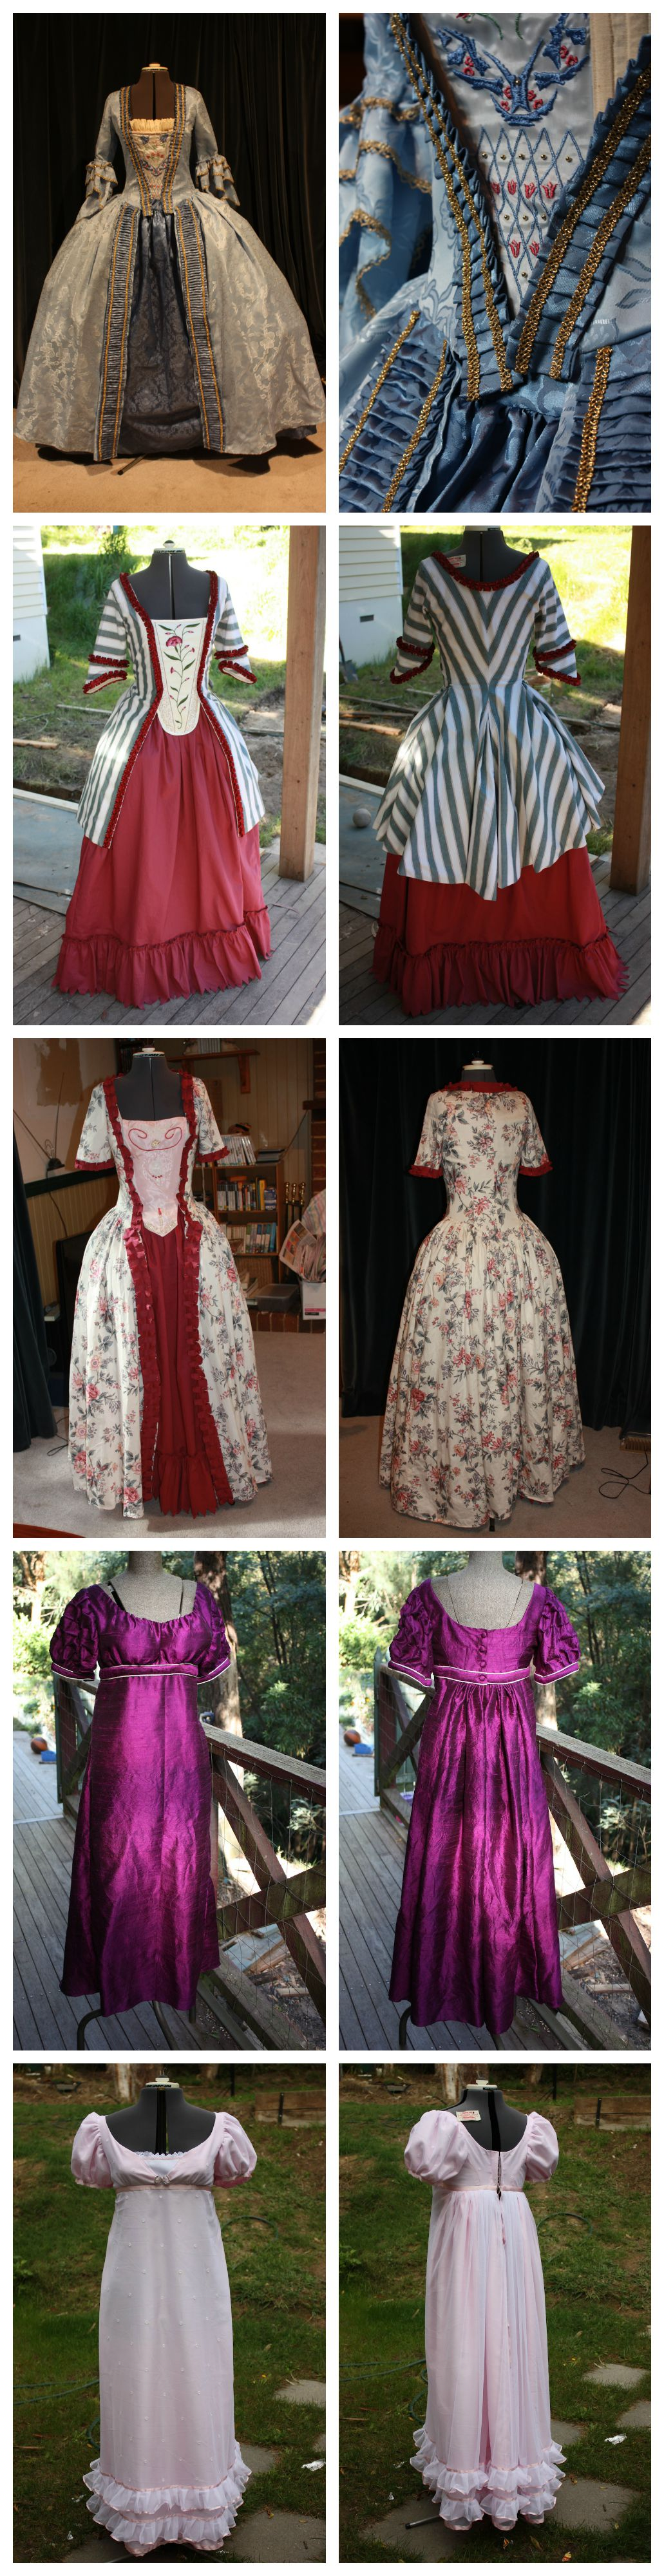 Period Dresses - Tutorials